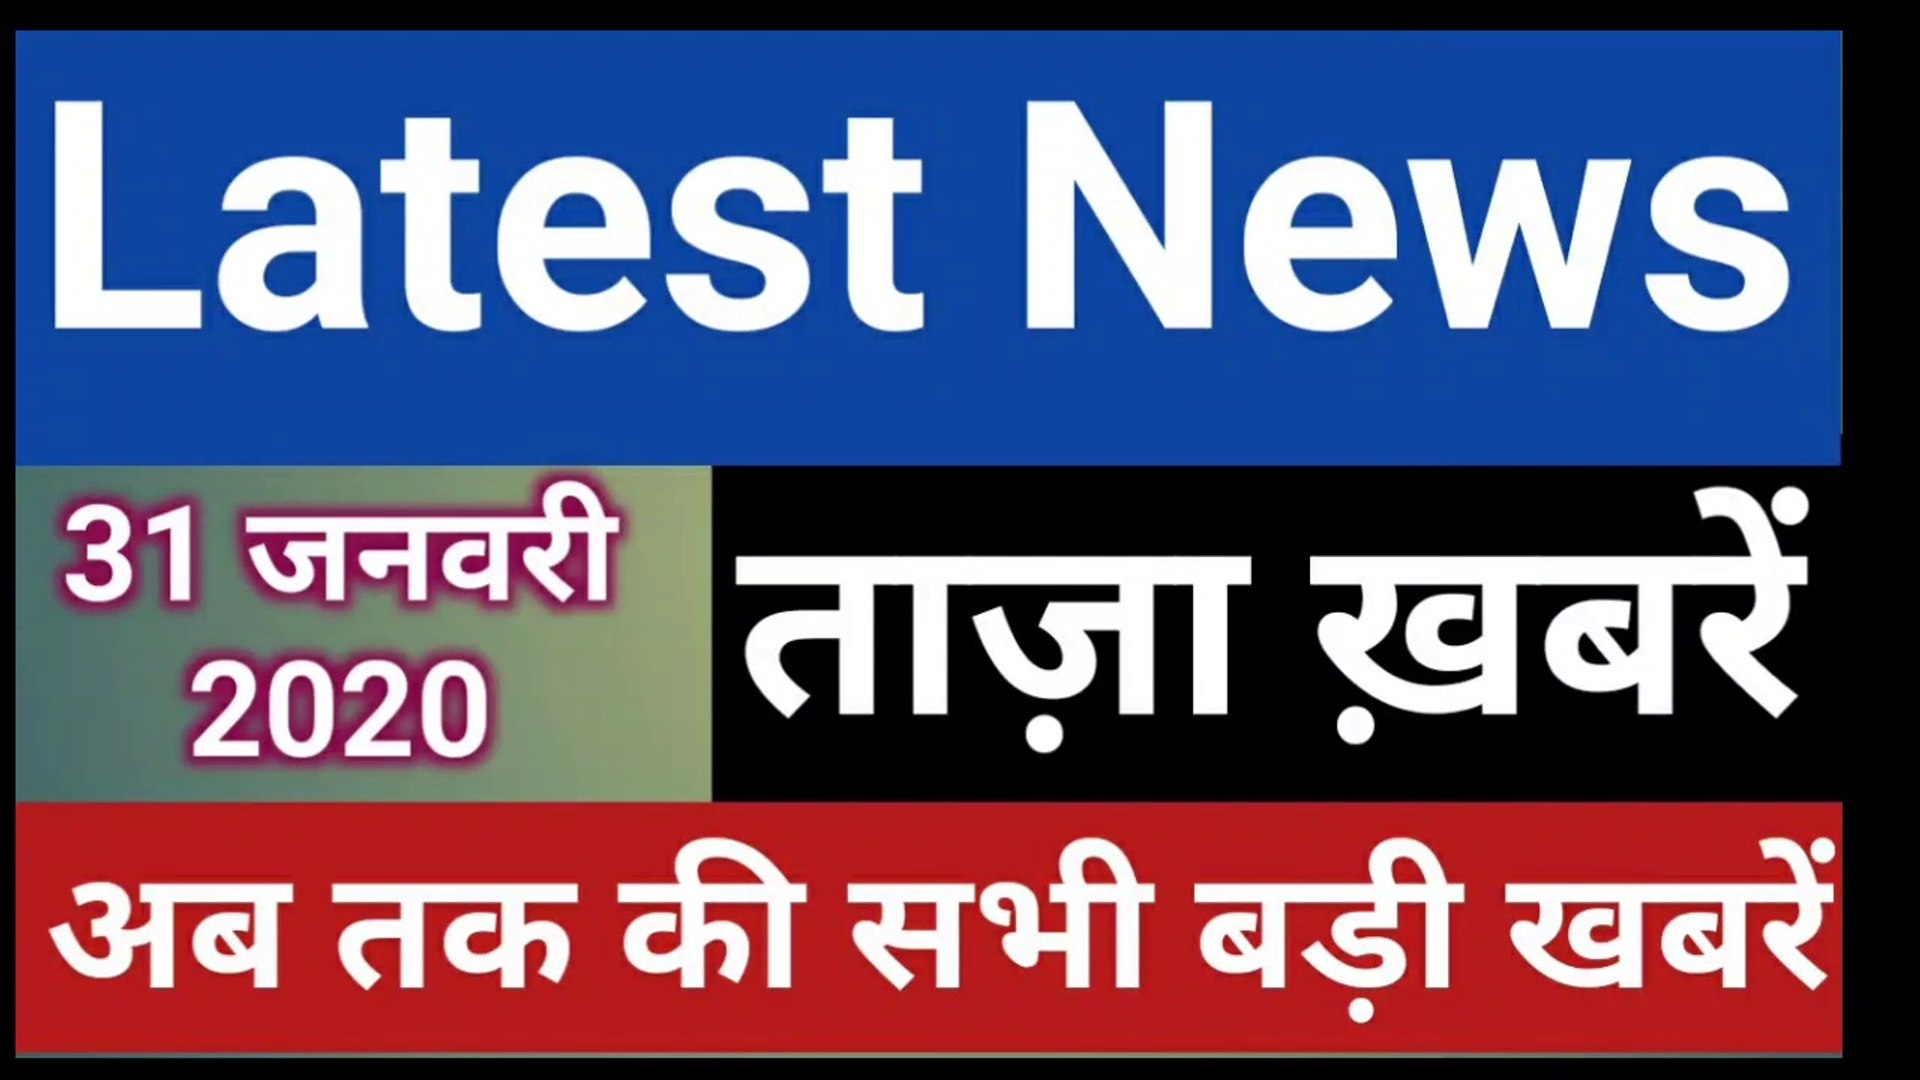 31 January 2020 : Morning News | Latest News Today |  Today News | Hindi News | India News